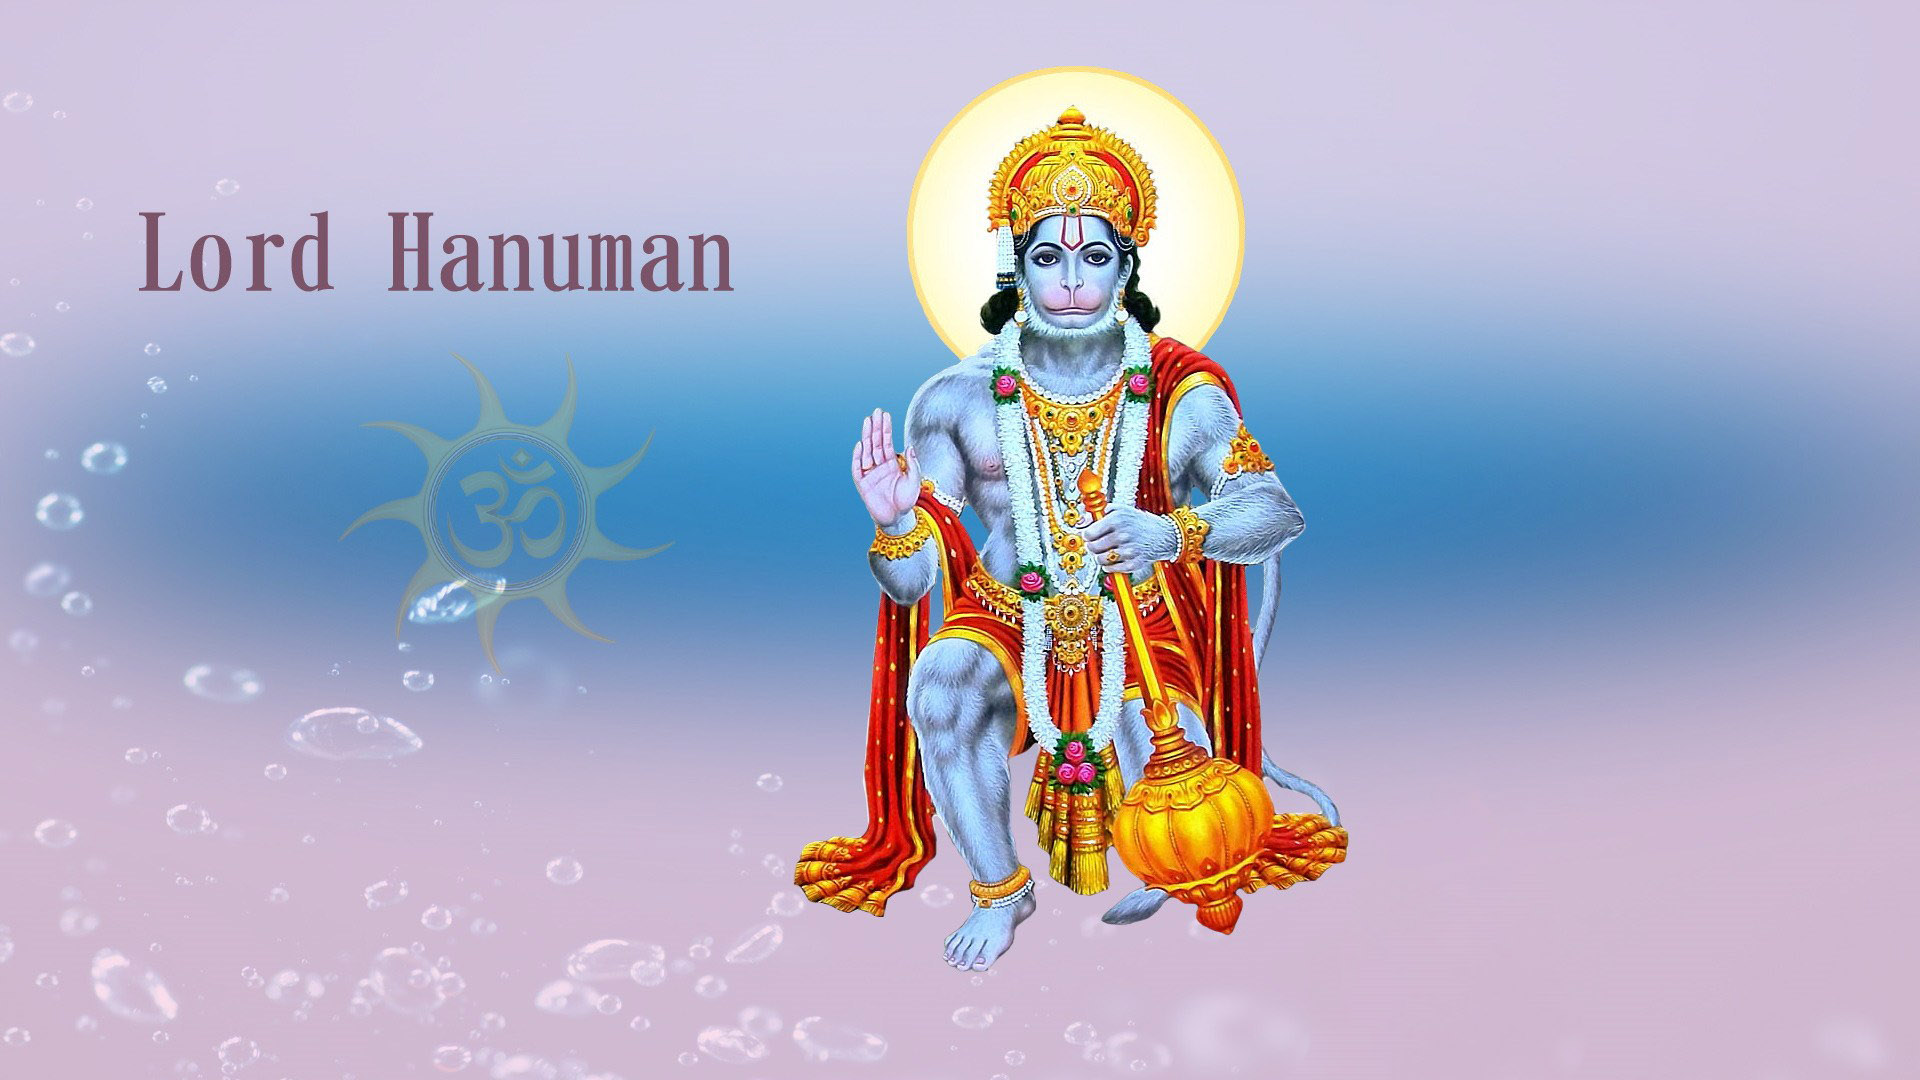 Hanuman ji ashtak cover picture